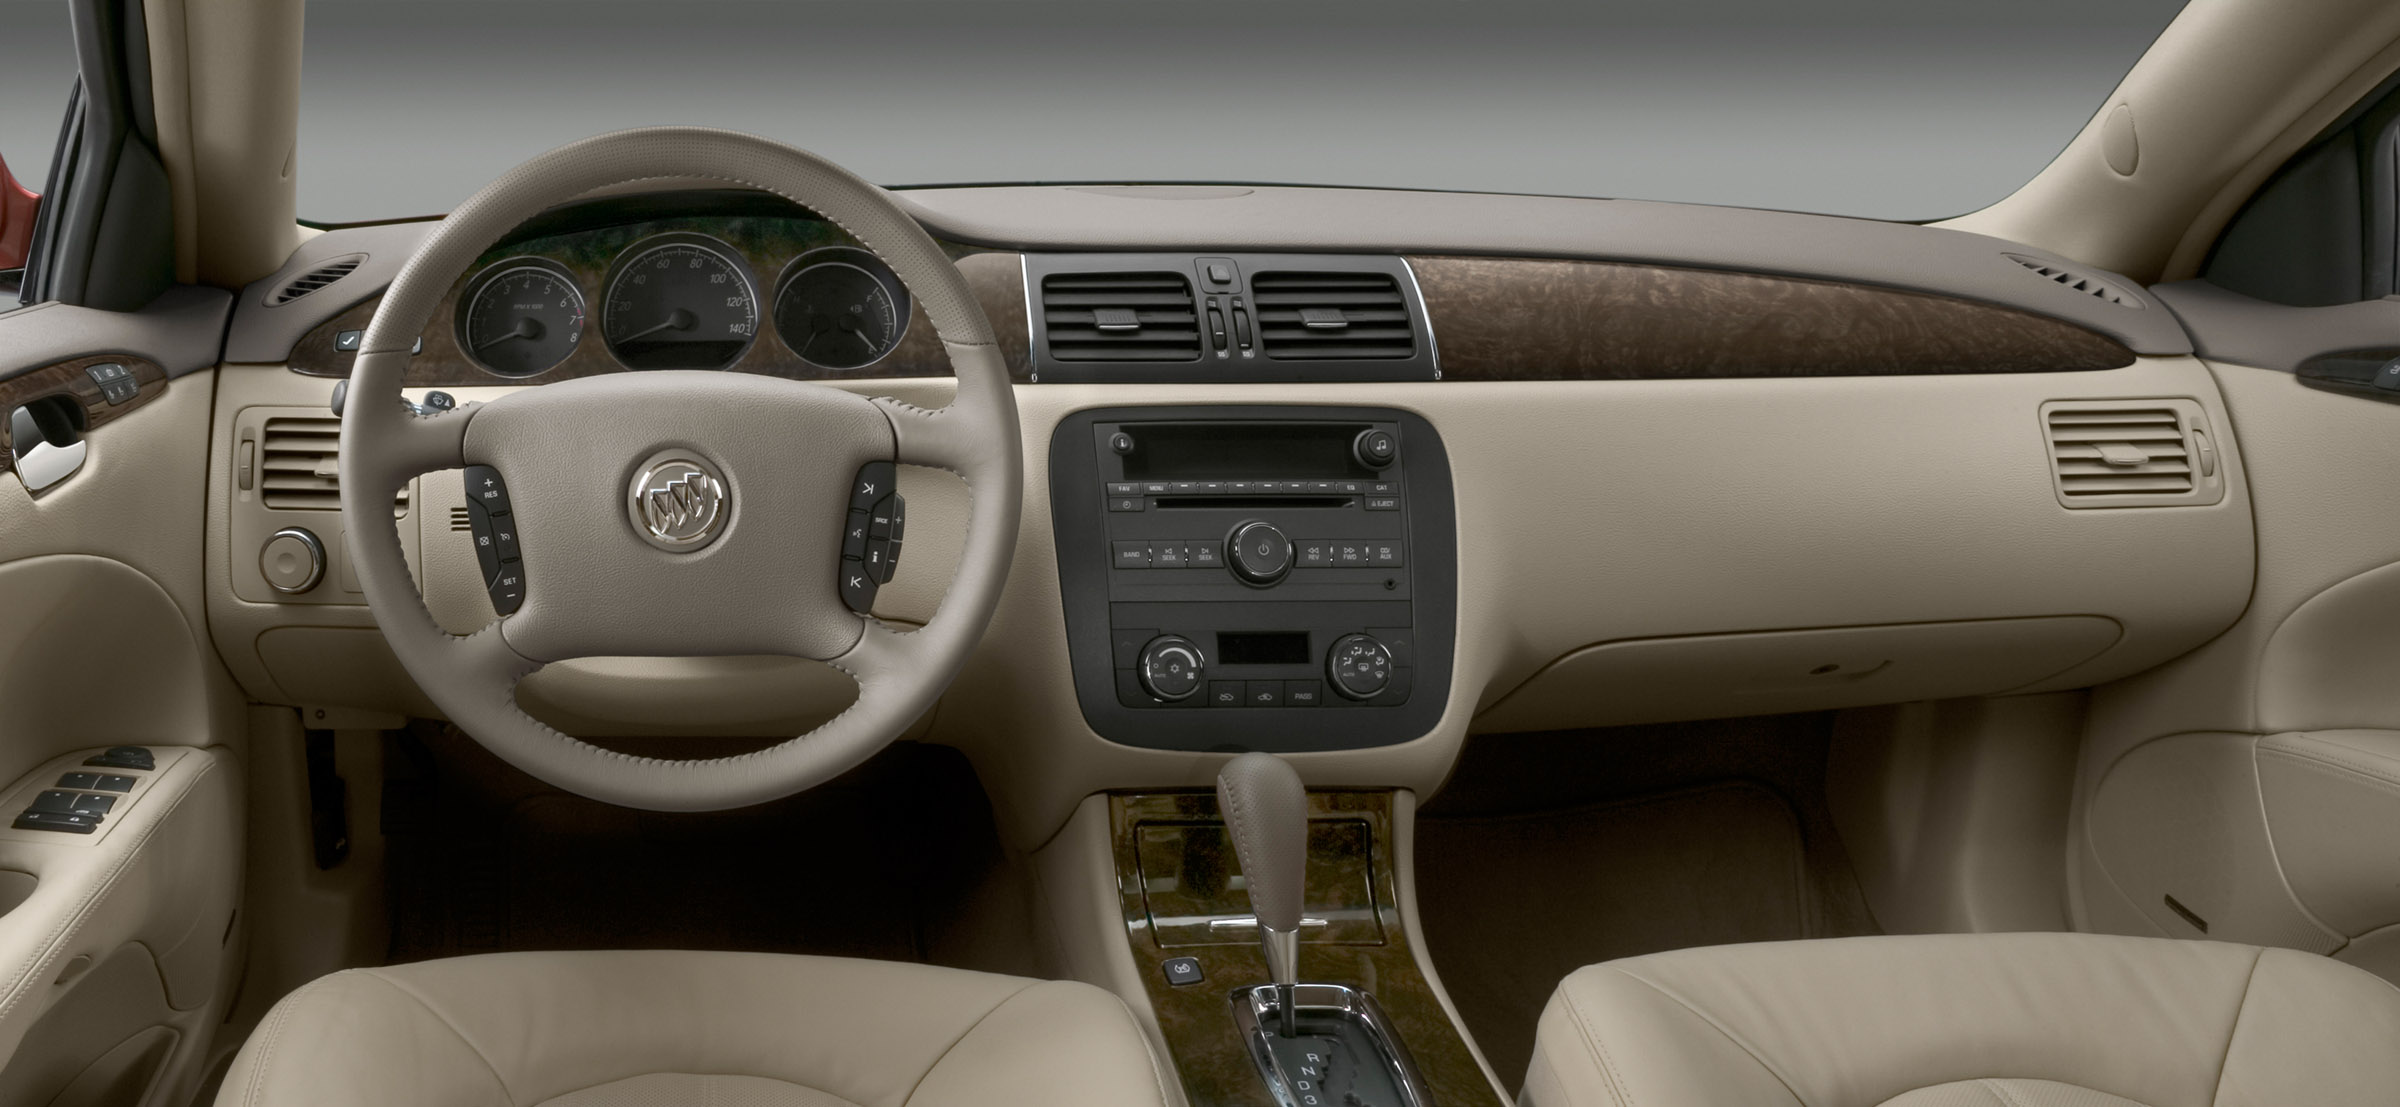 2011 buick lucerne picture 51533